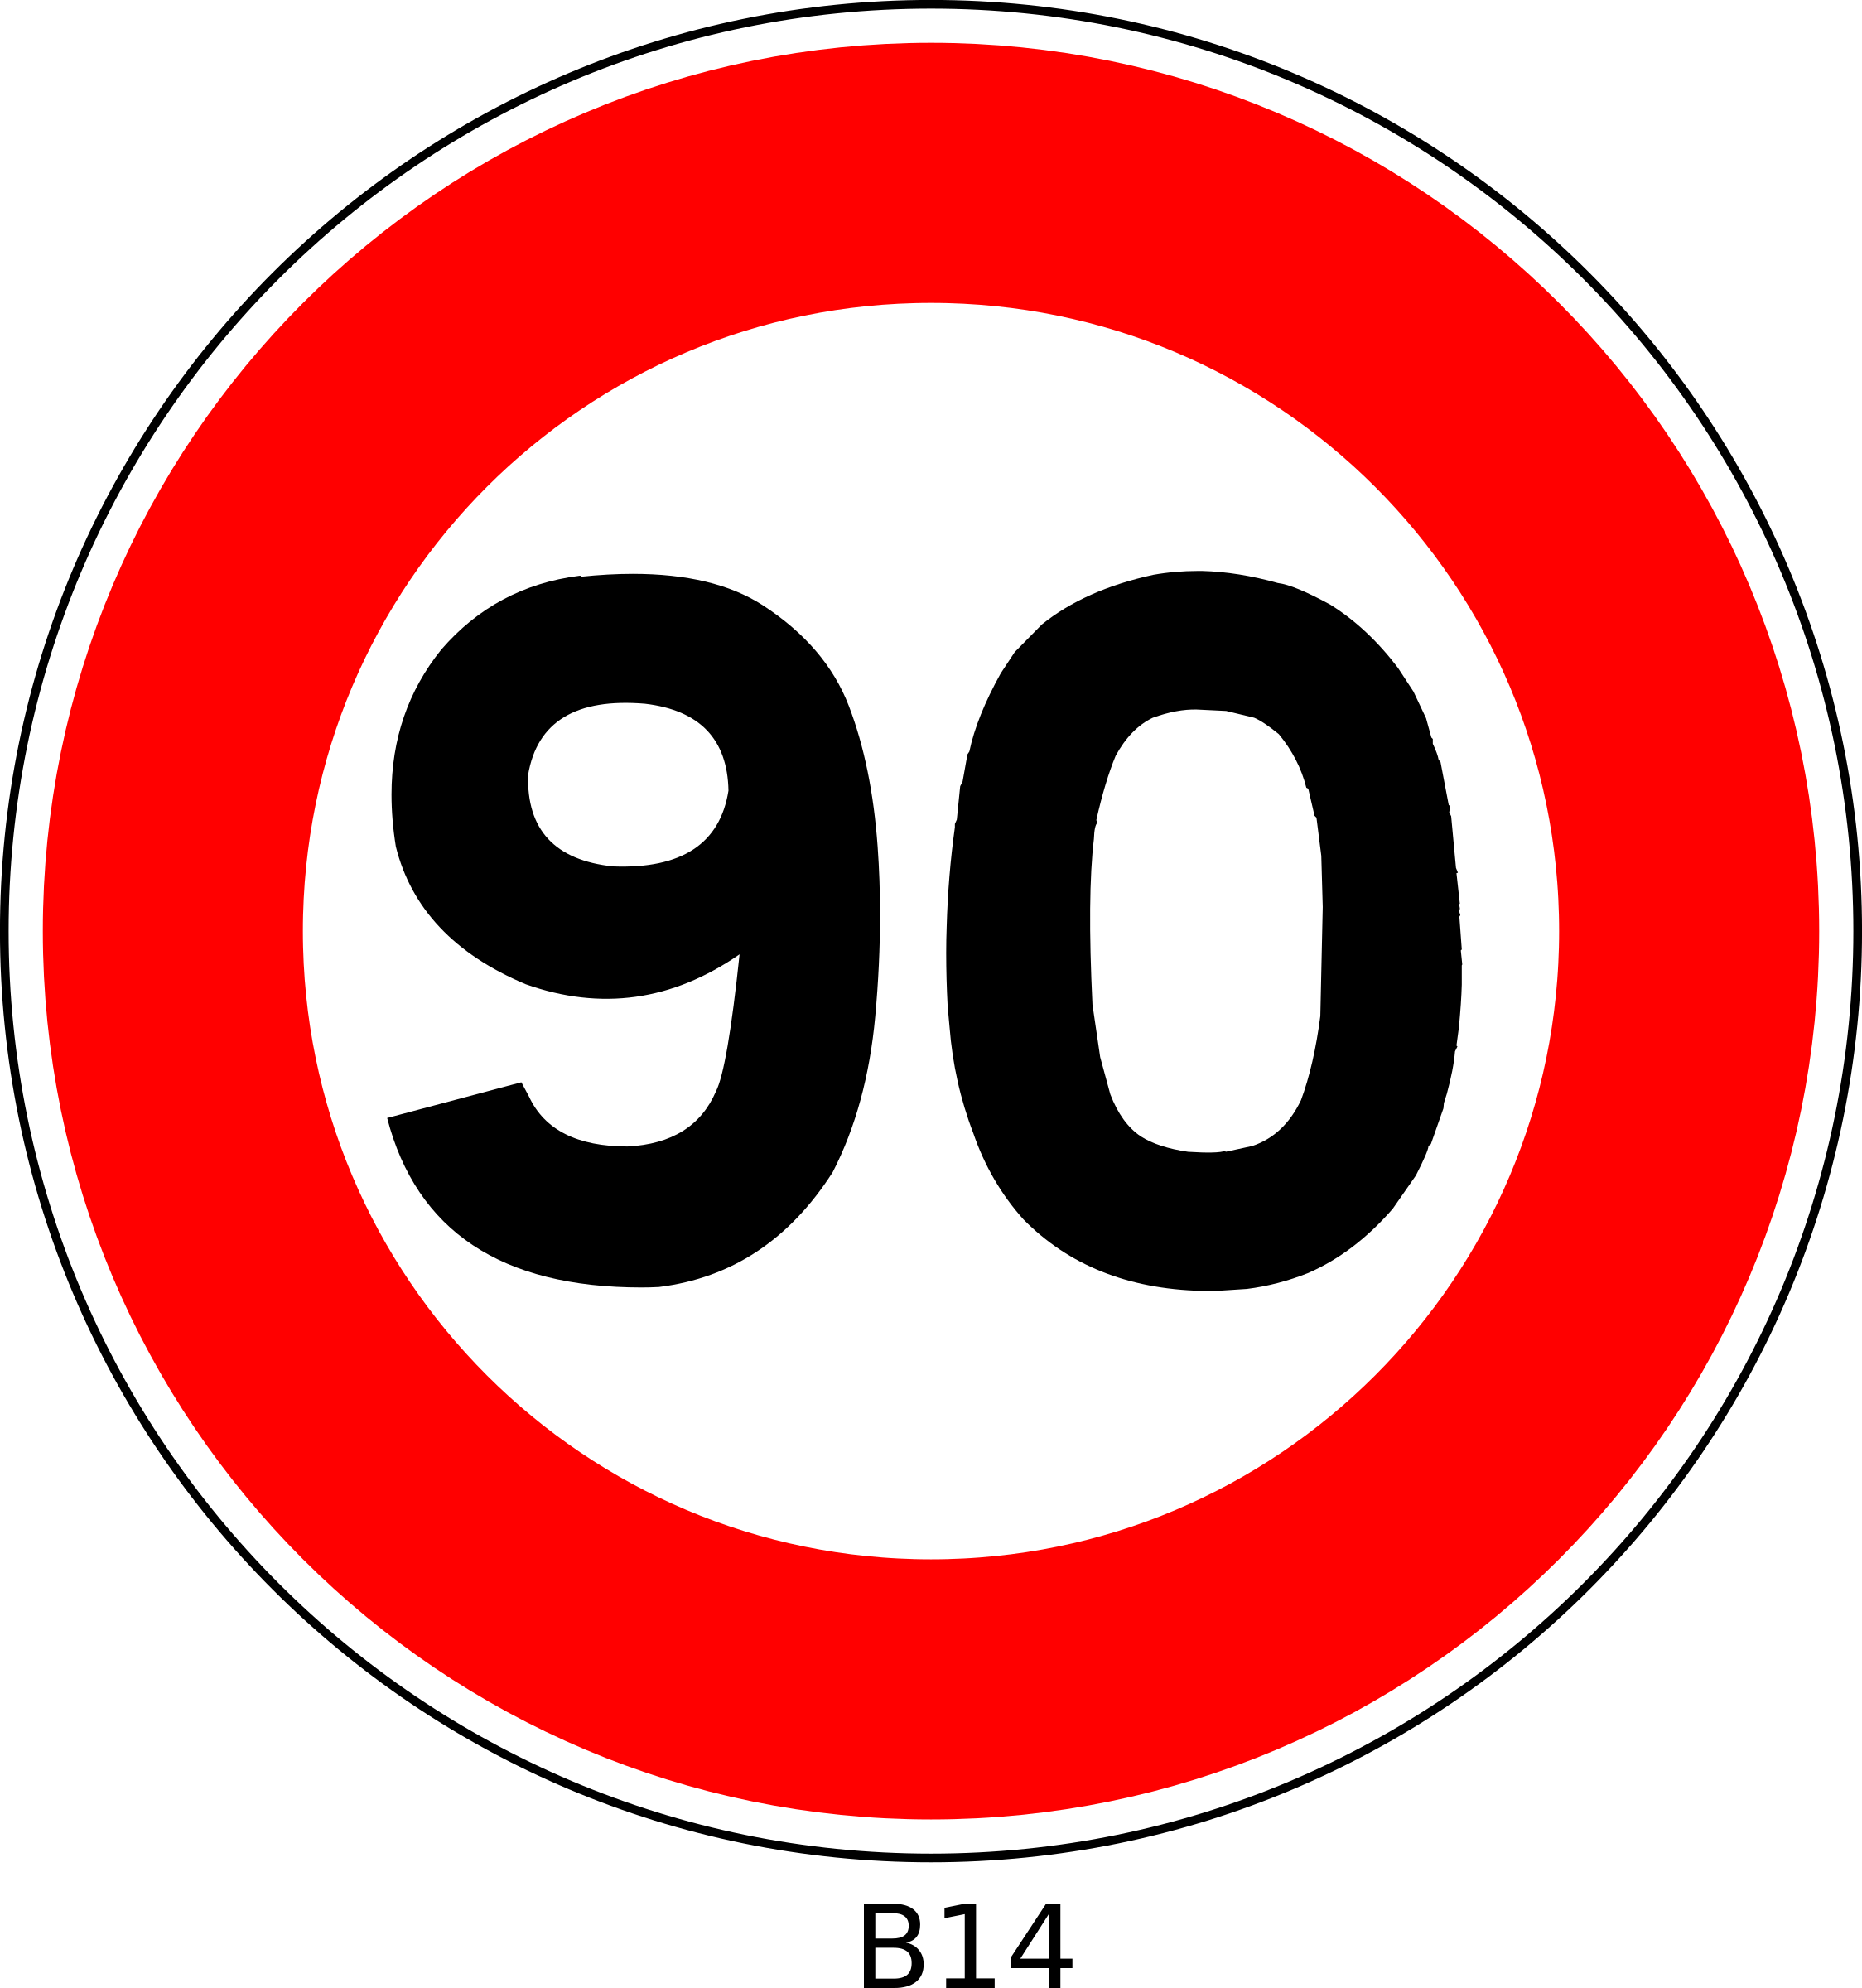 Number 90 Clipart.